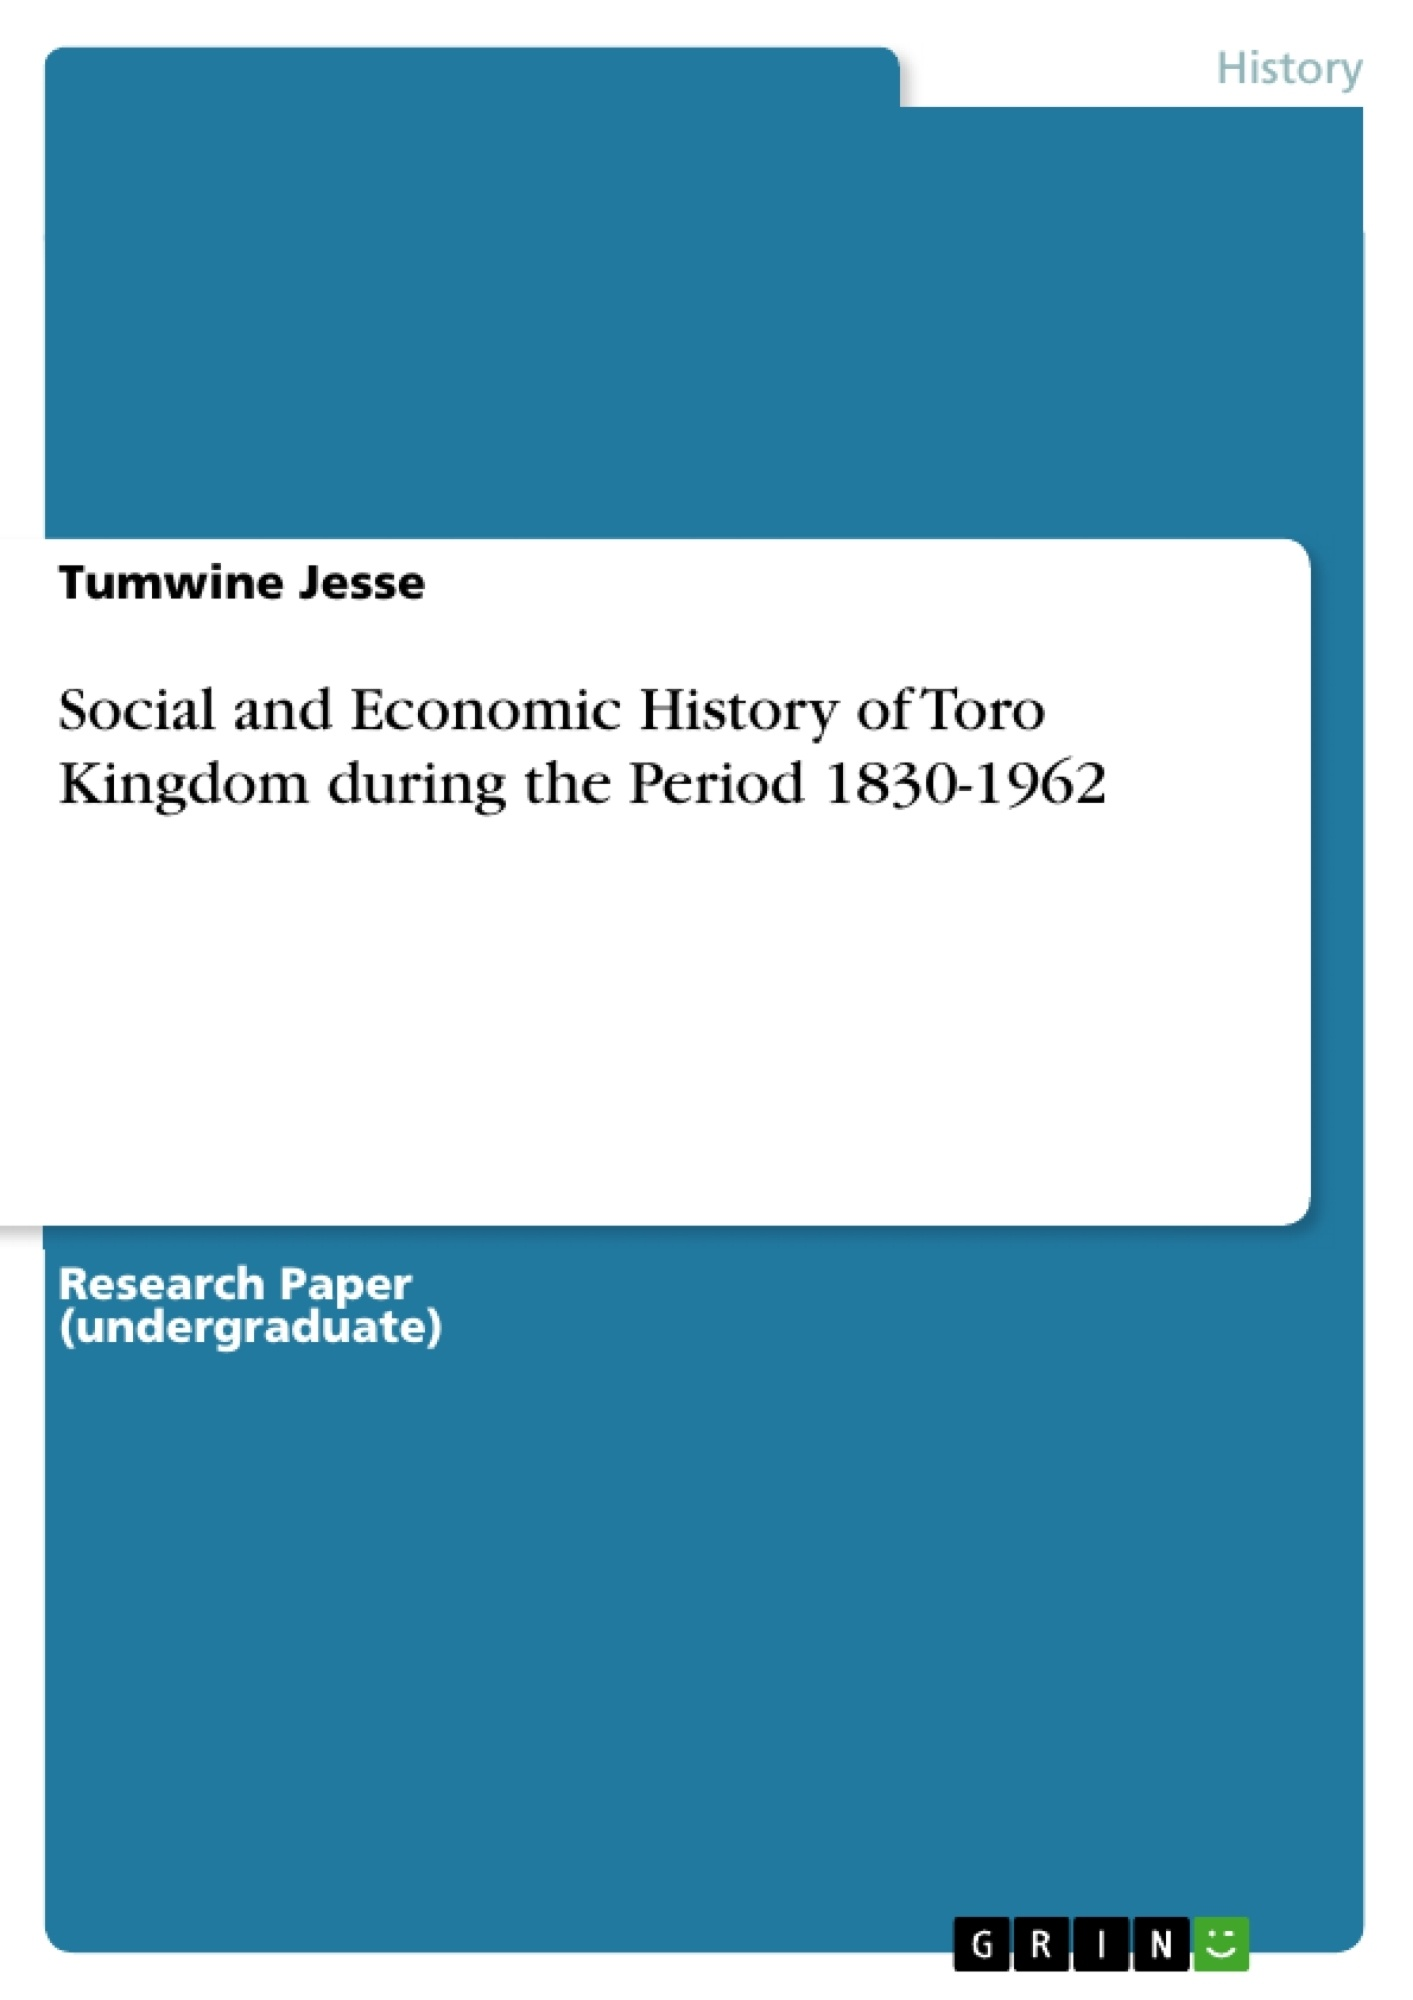 Title: Social and Economic History of Toro Kingdom during the Period 1830-1962